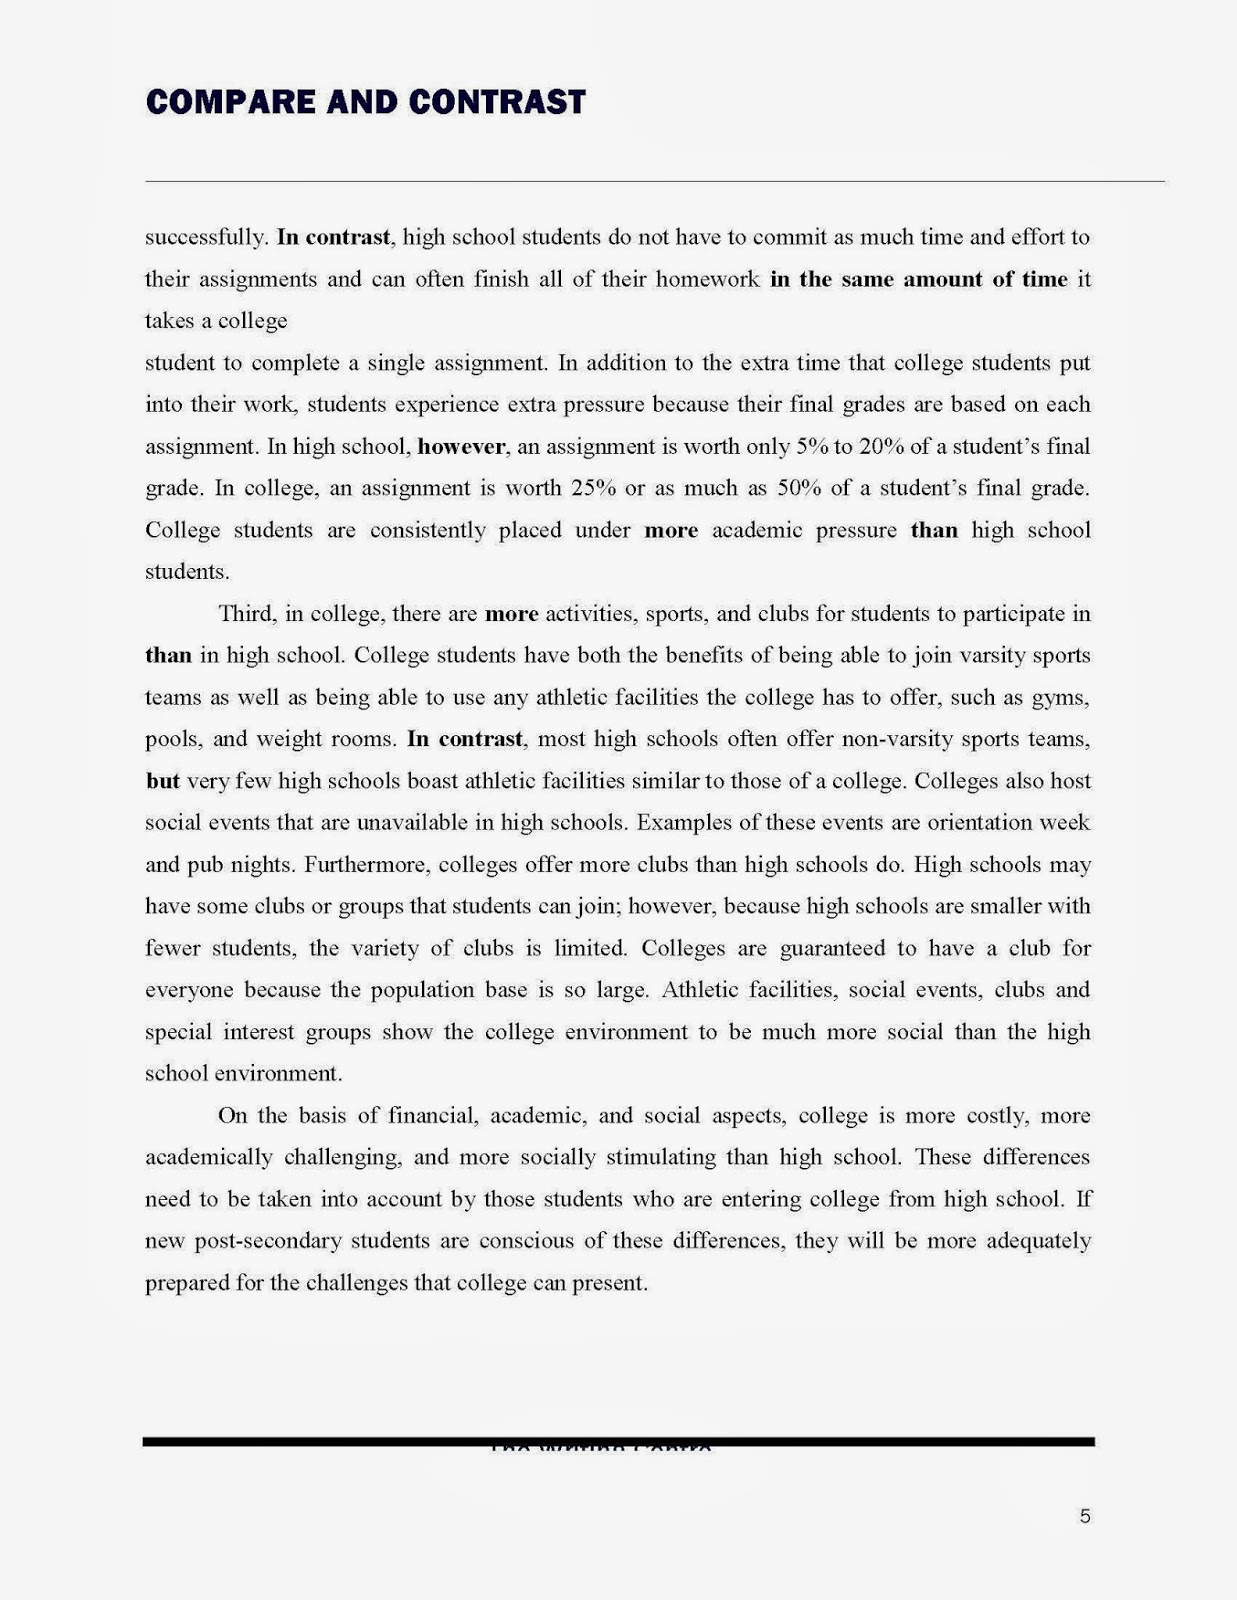 high school vs college essay compare and contrast easy essay  essay on the giver by lois lowry essay on the book the giver by compare and